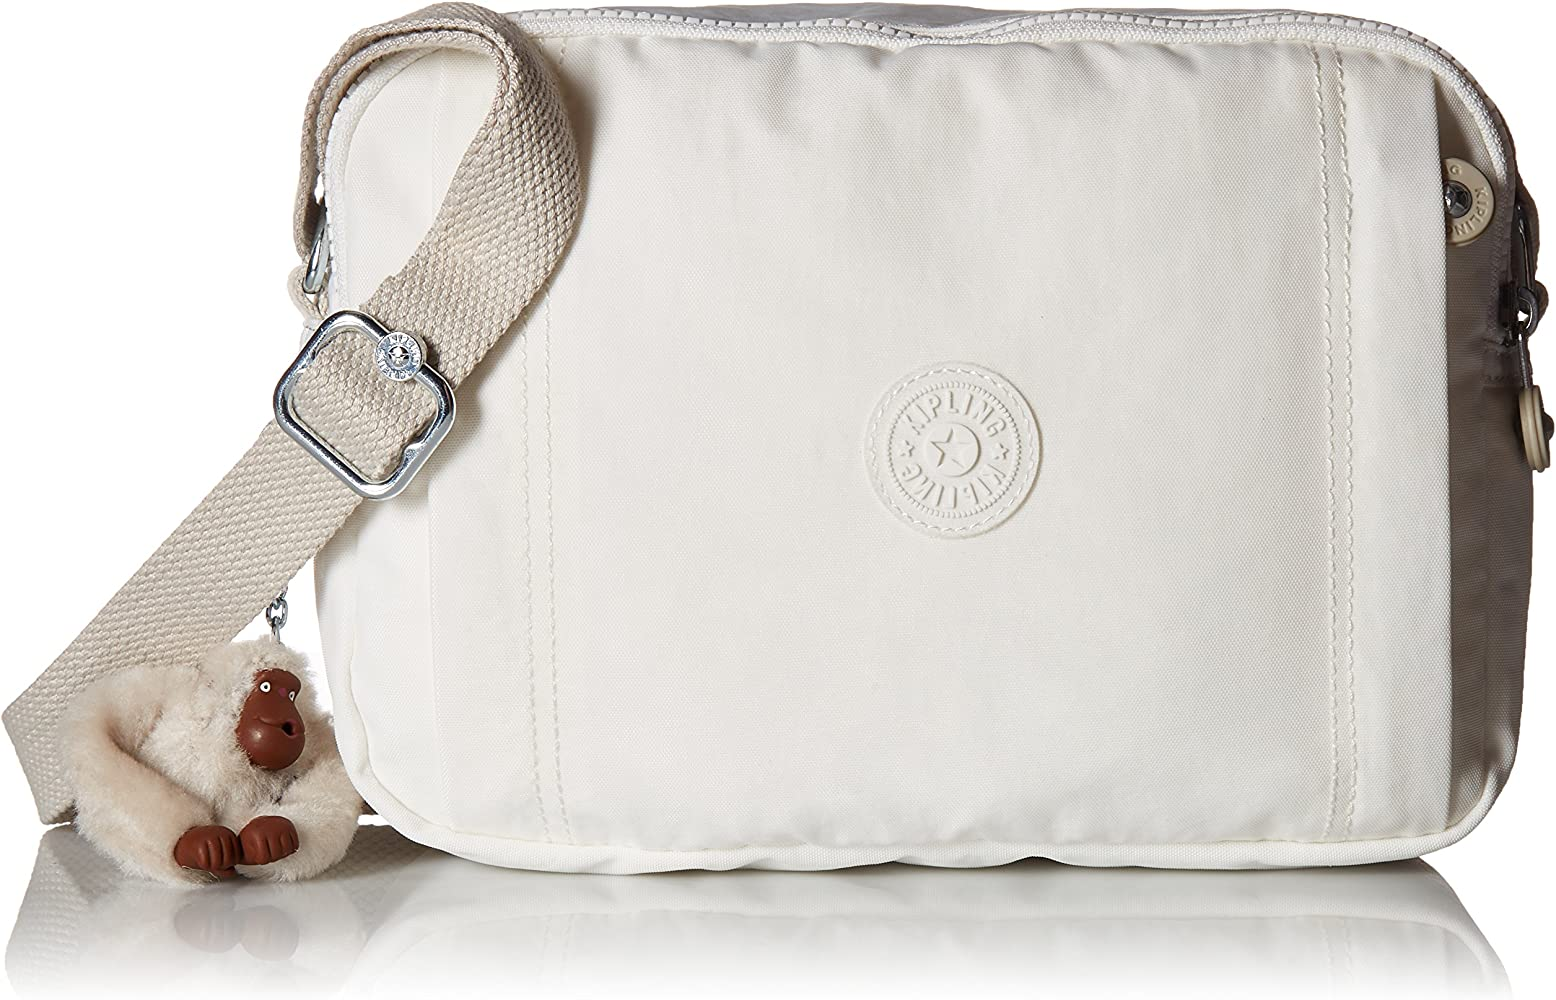 656d11a33 Kipling Benci Alabaster Crossbody Camera Bag: Handbags: Amazon.com